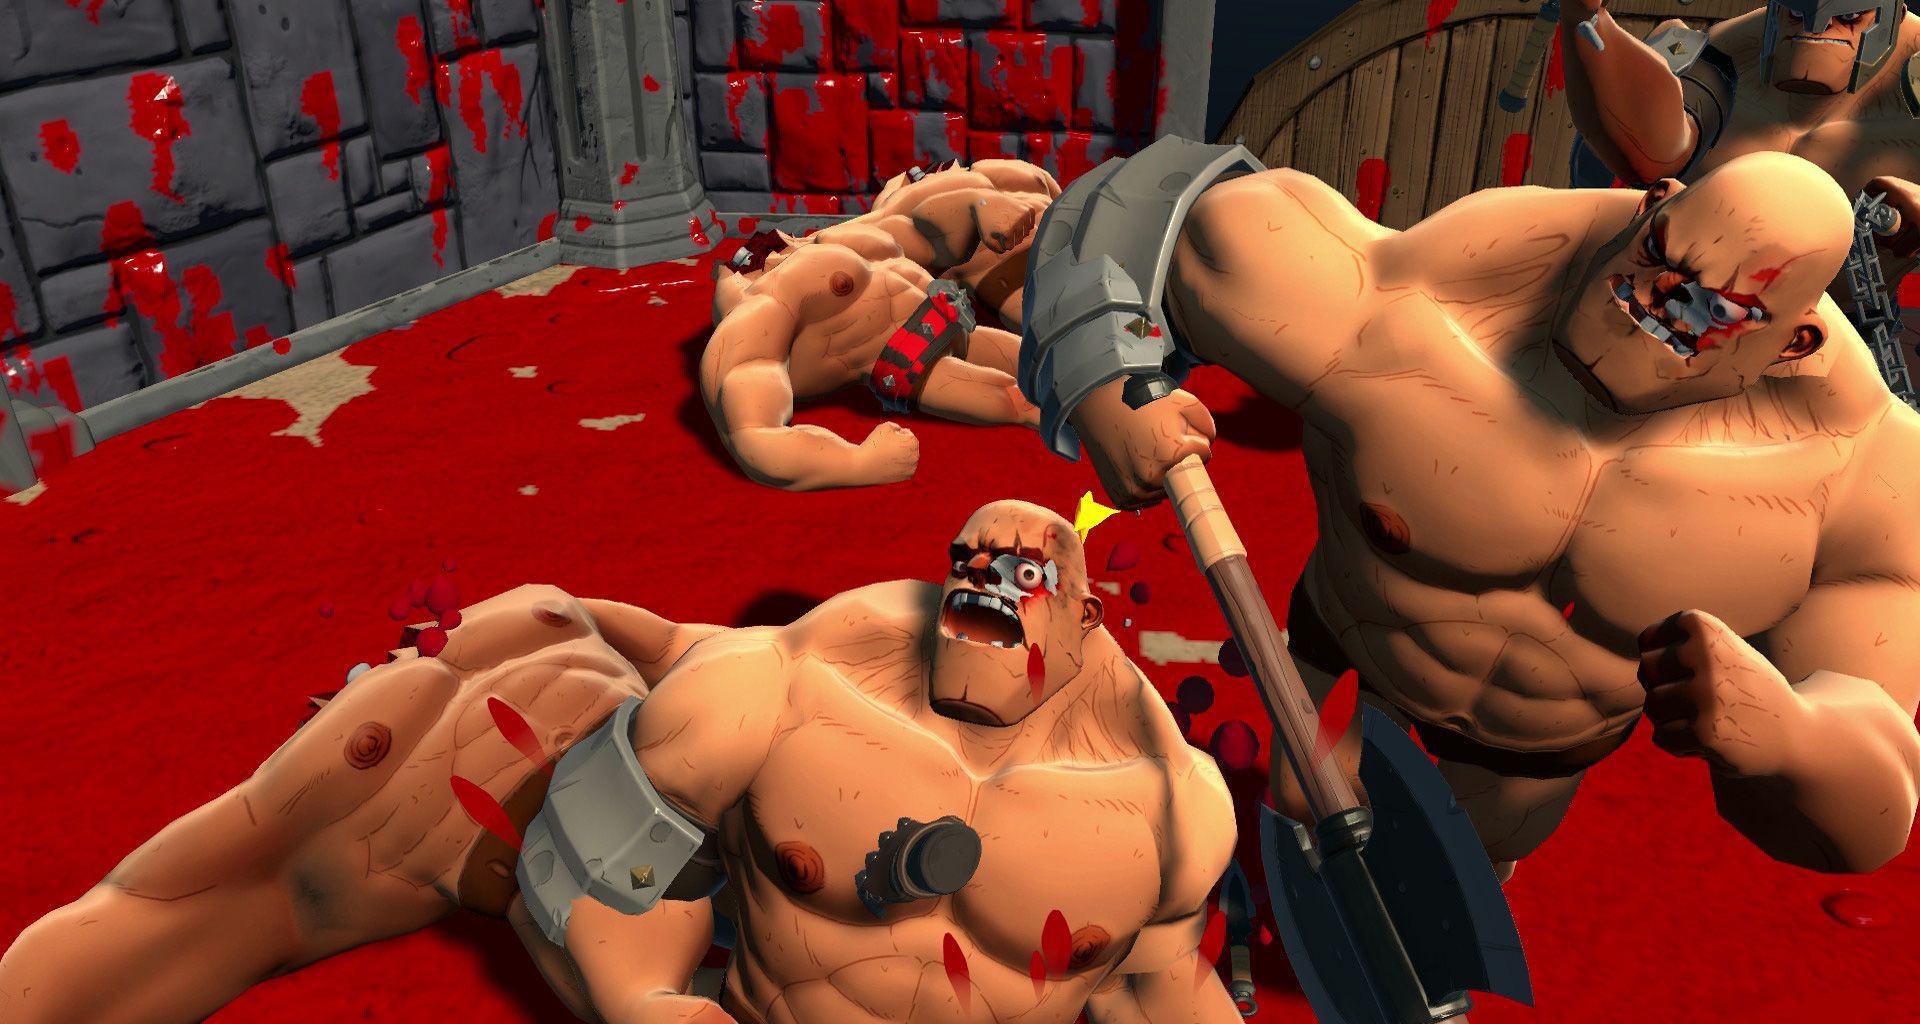 Ass Perfect Video gorn is the perfect name for this ridiculous gladiator sim